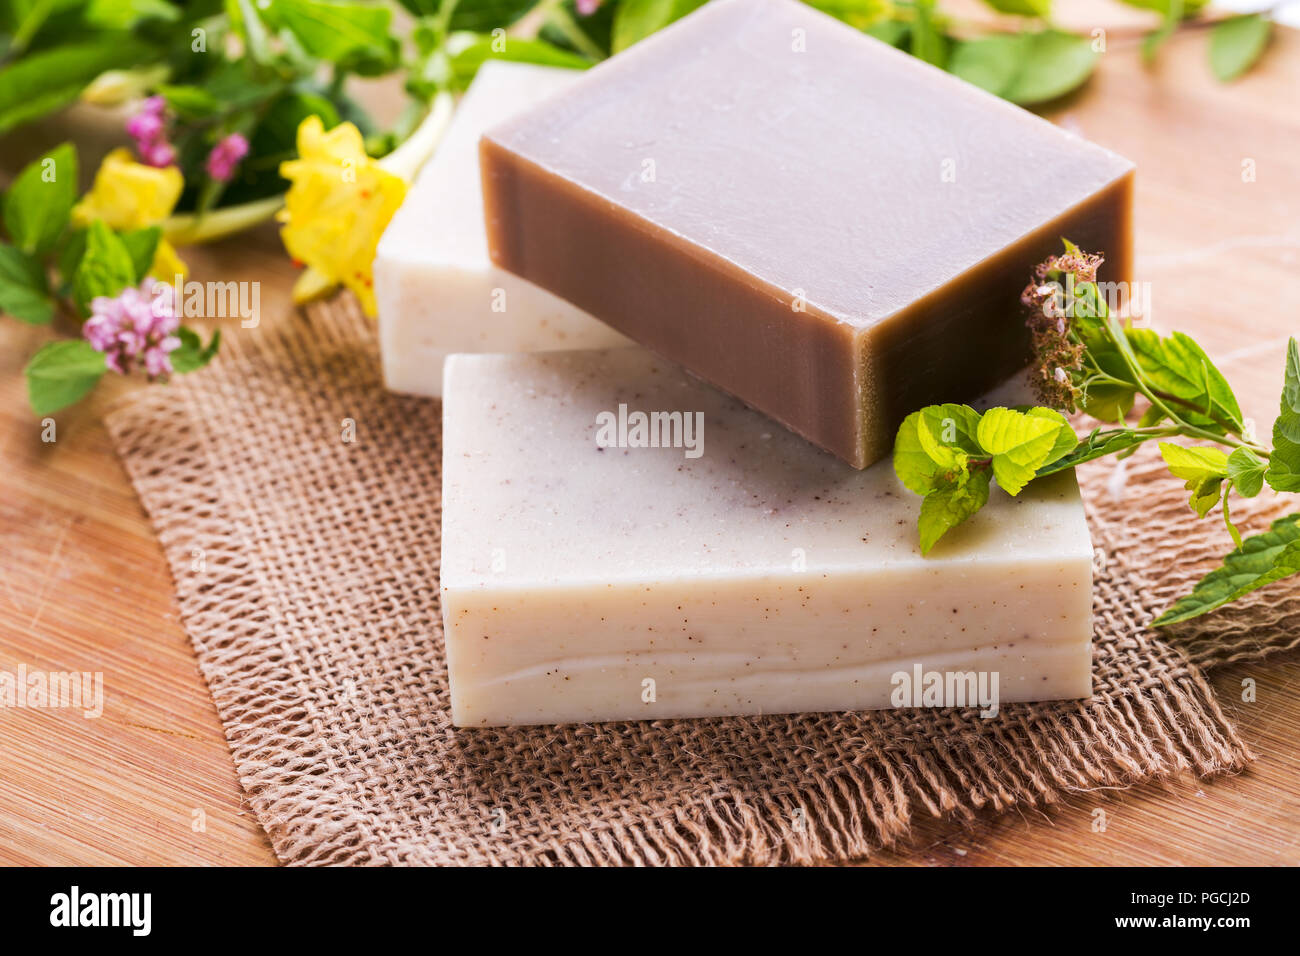 Beautiful spa setting with handmade soap - Stock Image